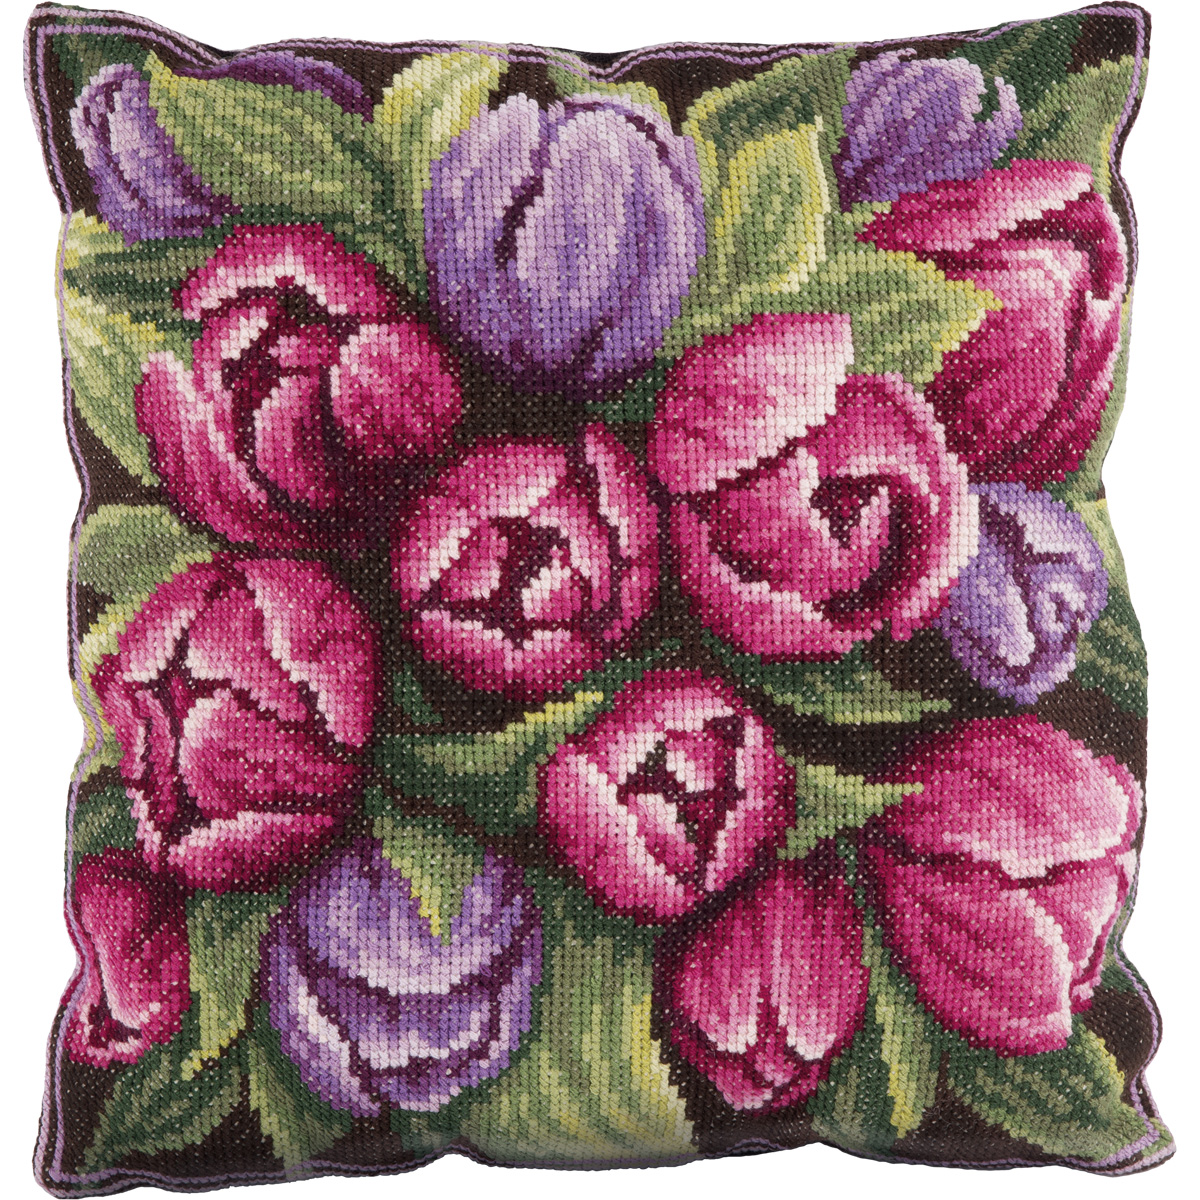 Embroidery kits PANNA PD-1548 Tulips (Cushion Front)